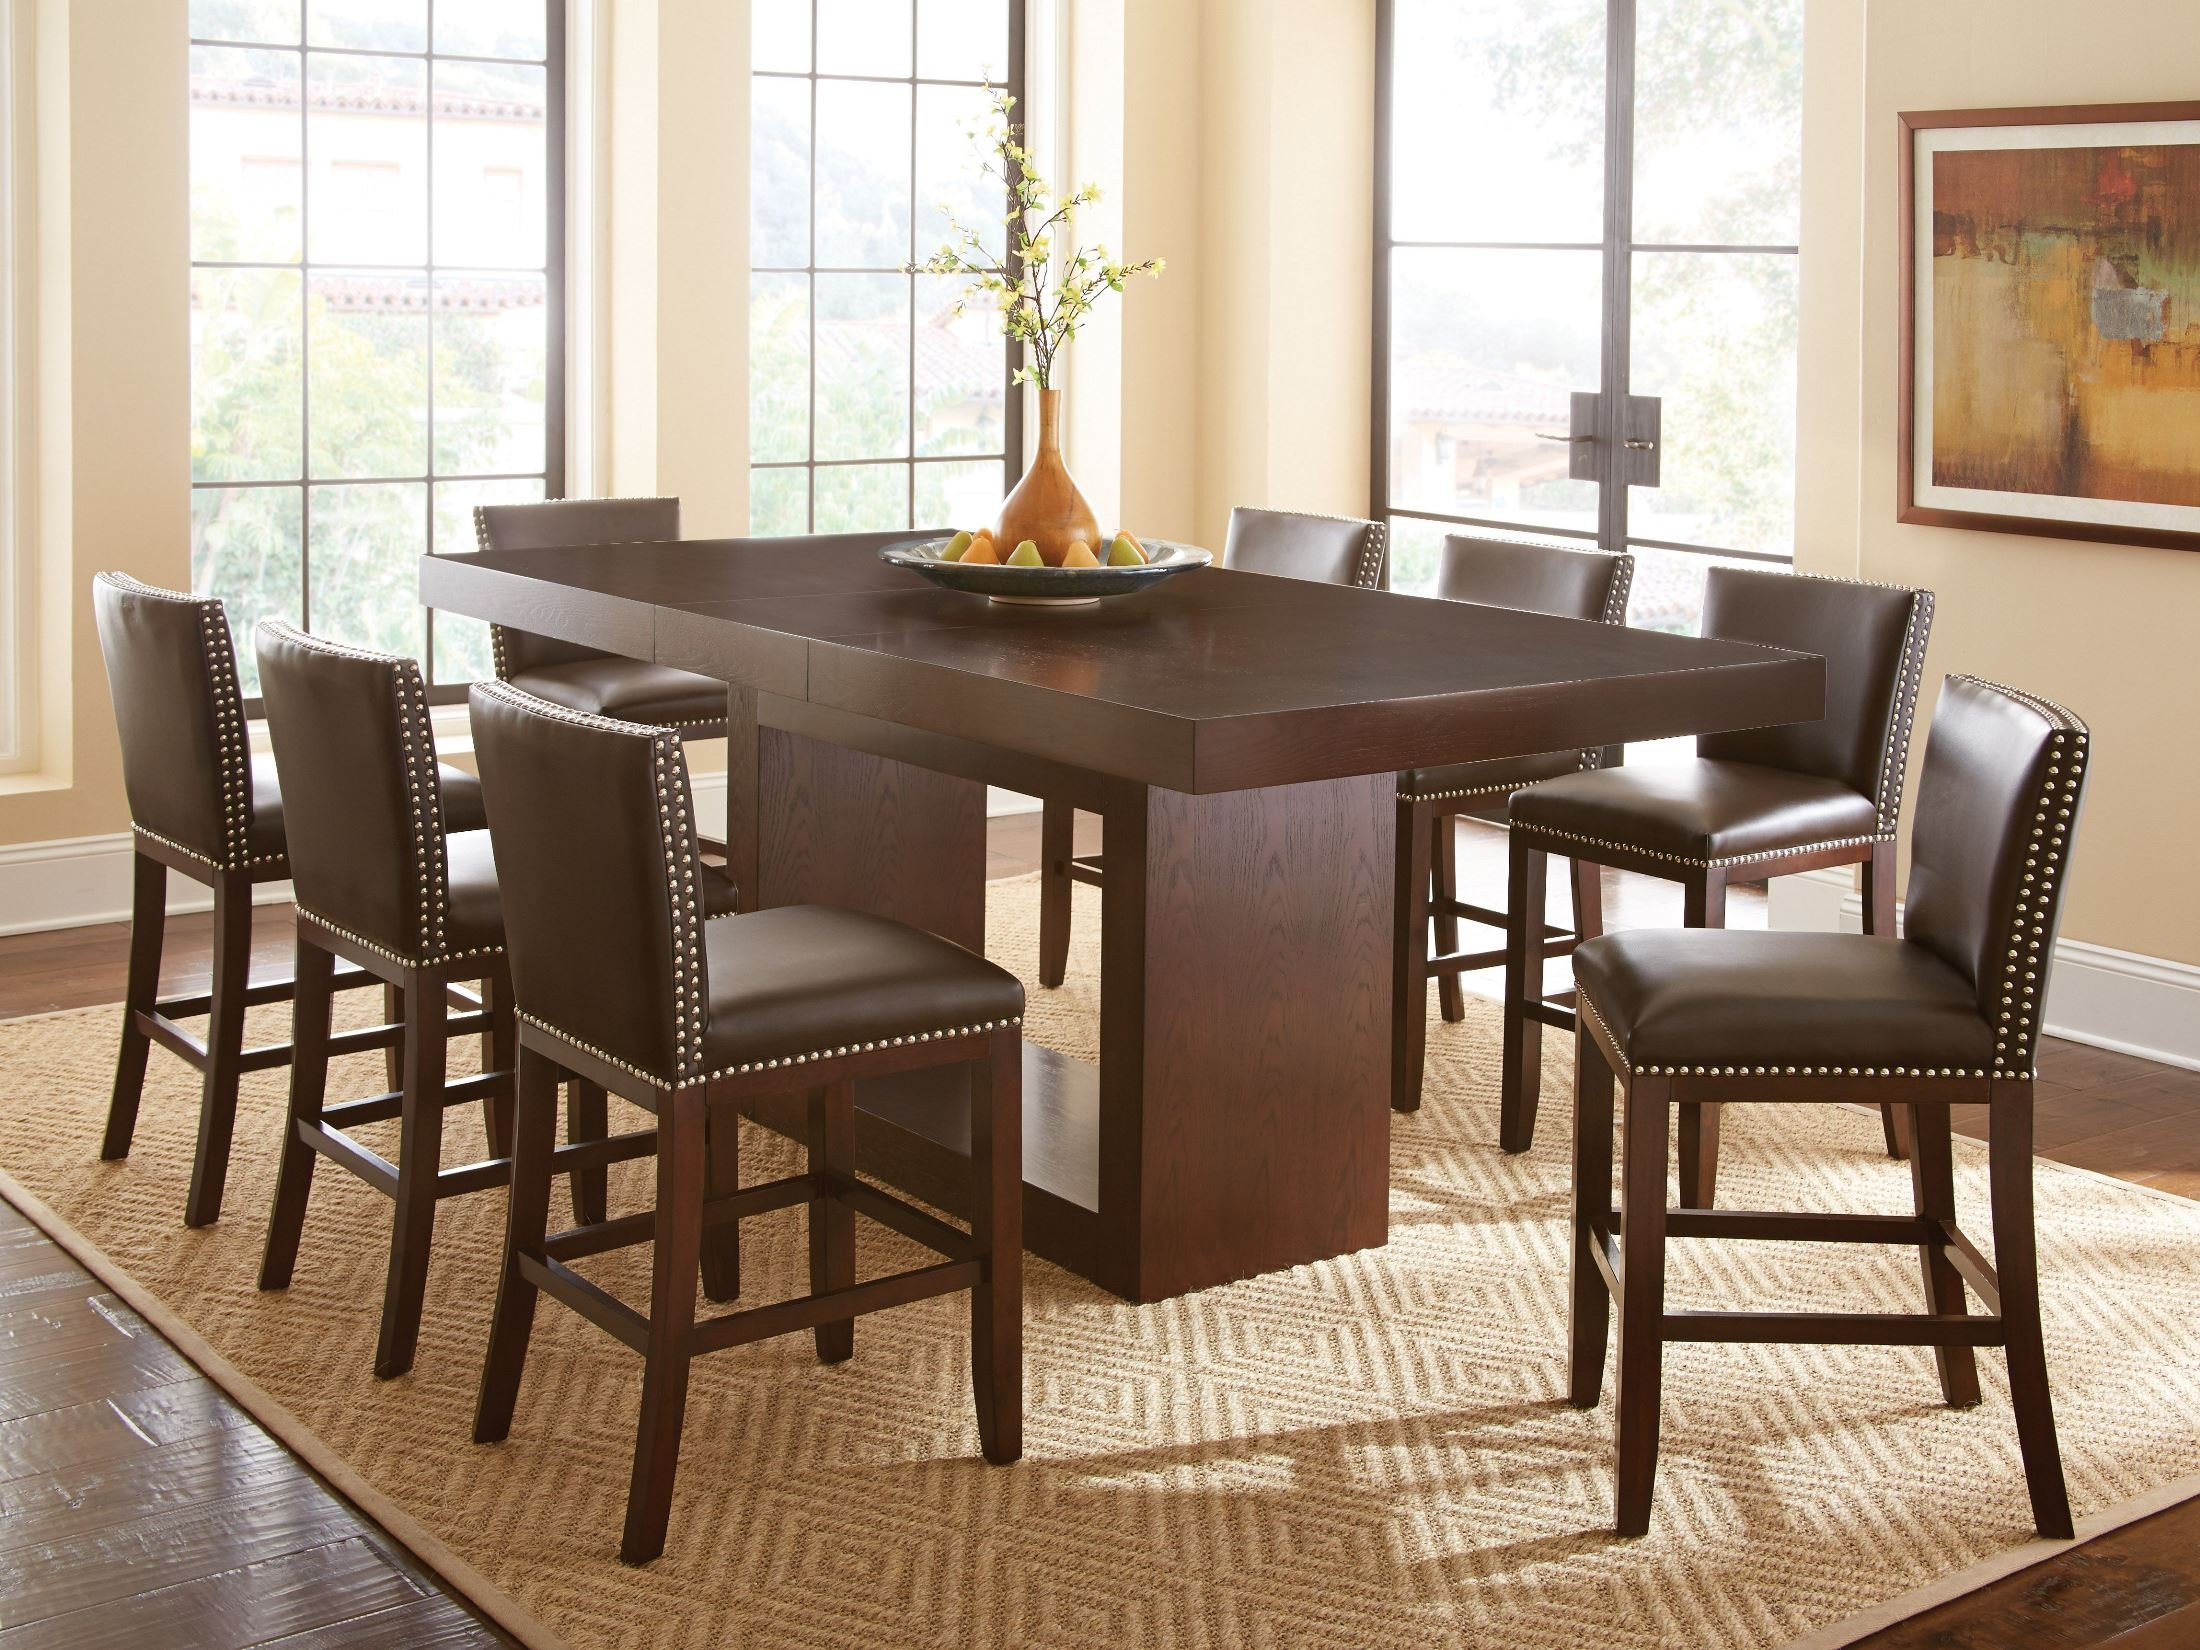 antonio extendable rectangular counter height dining table from steve